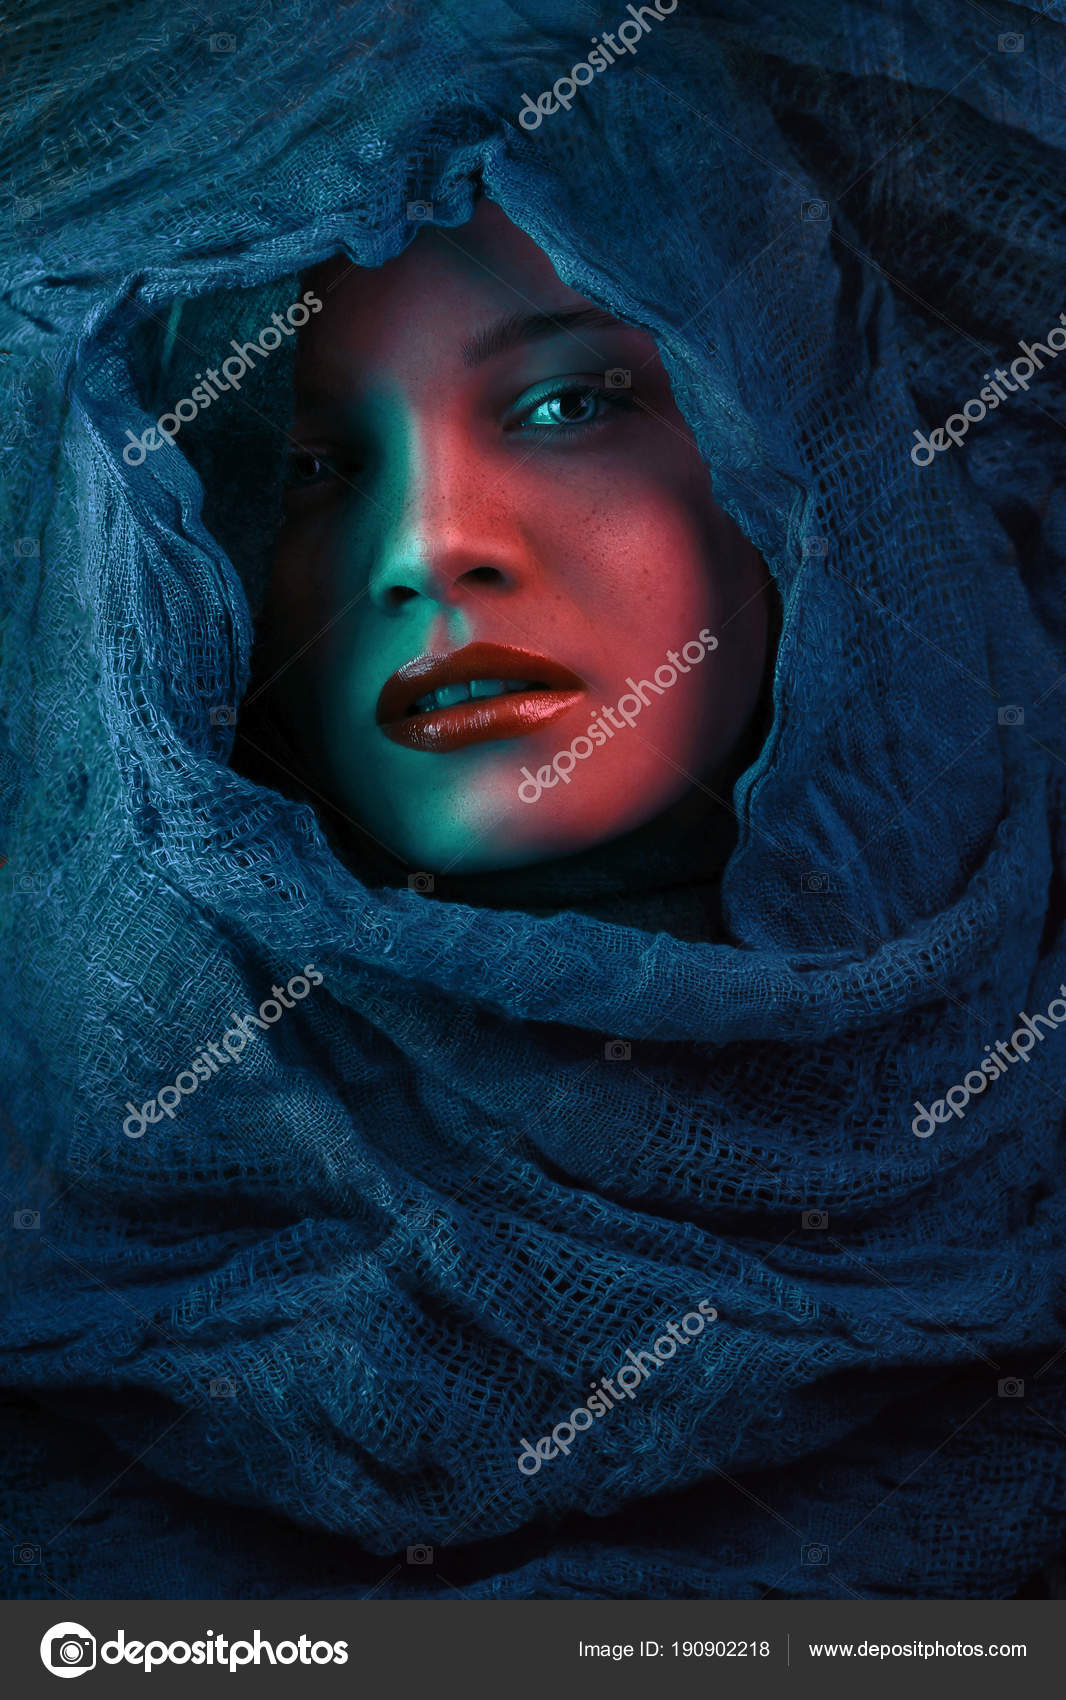 Woman covers her face with a blue cloth b31c04554